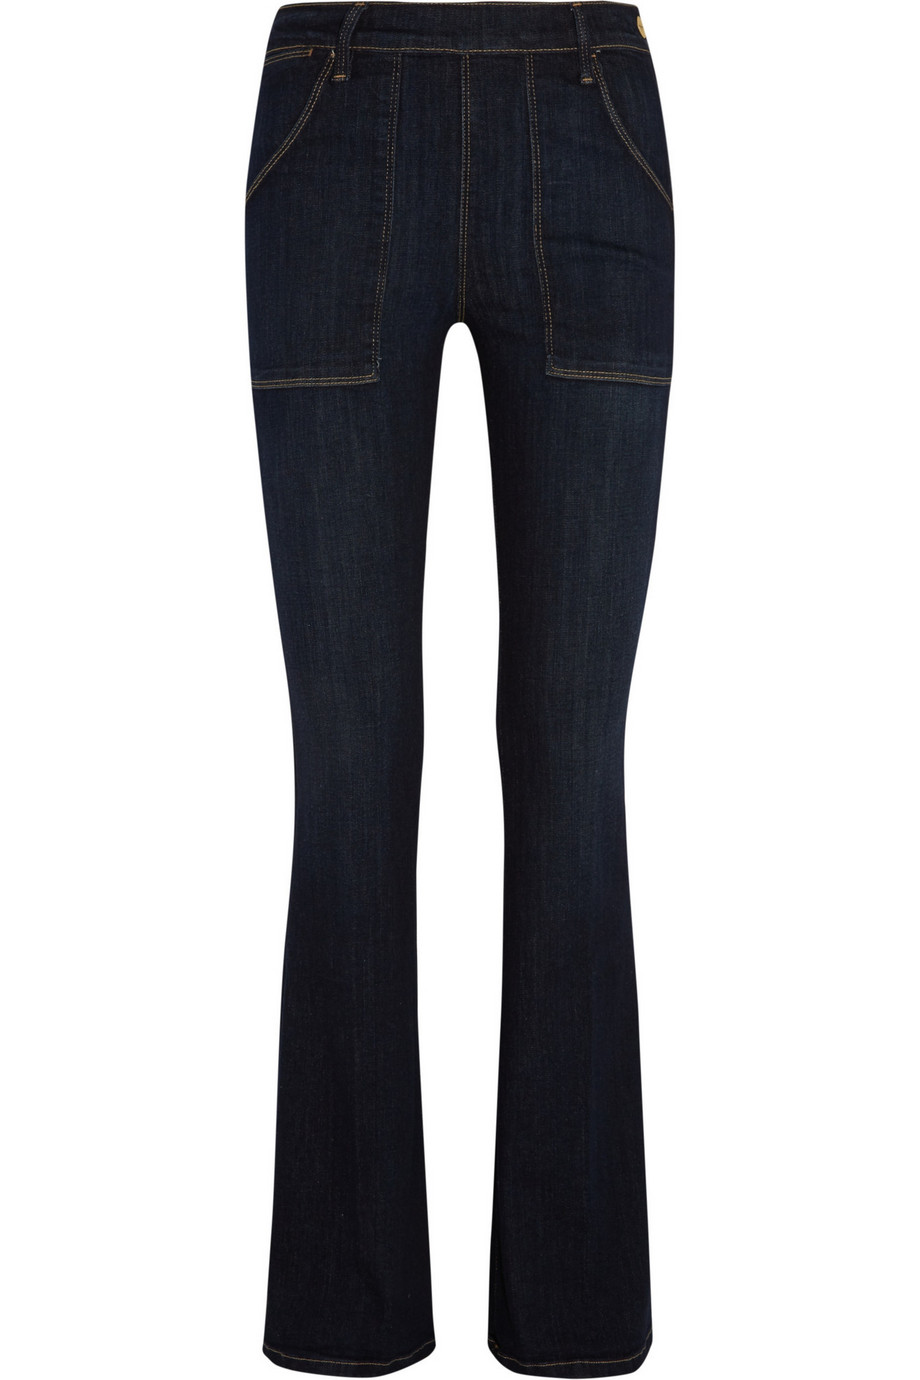 Frame Denim Le Flare De Francoise High-Rise Jeans, Dark Denim, Women's, Size: 26